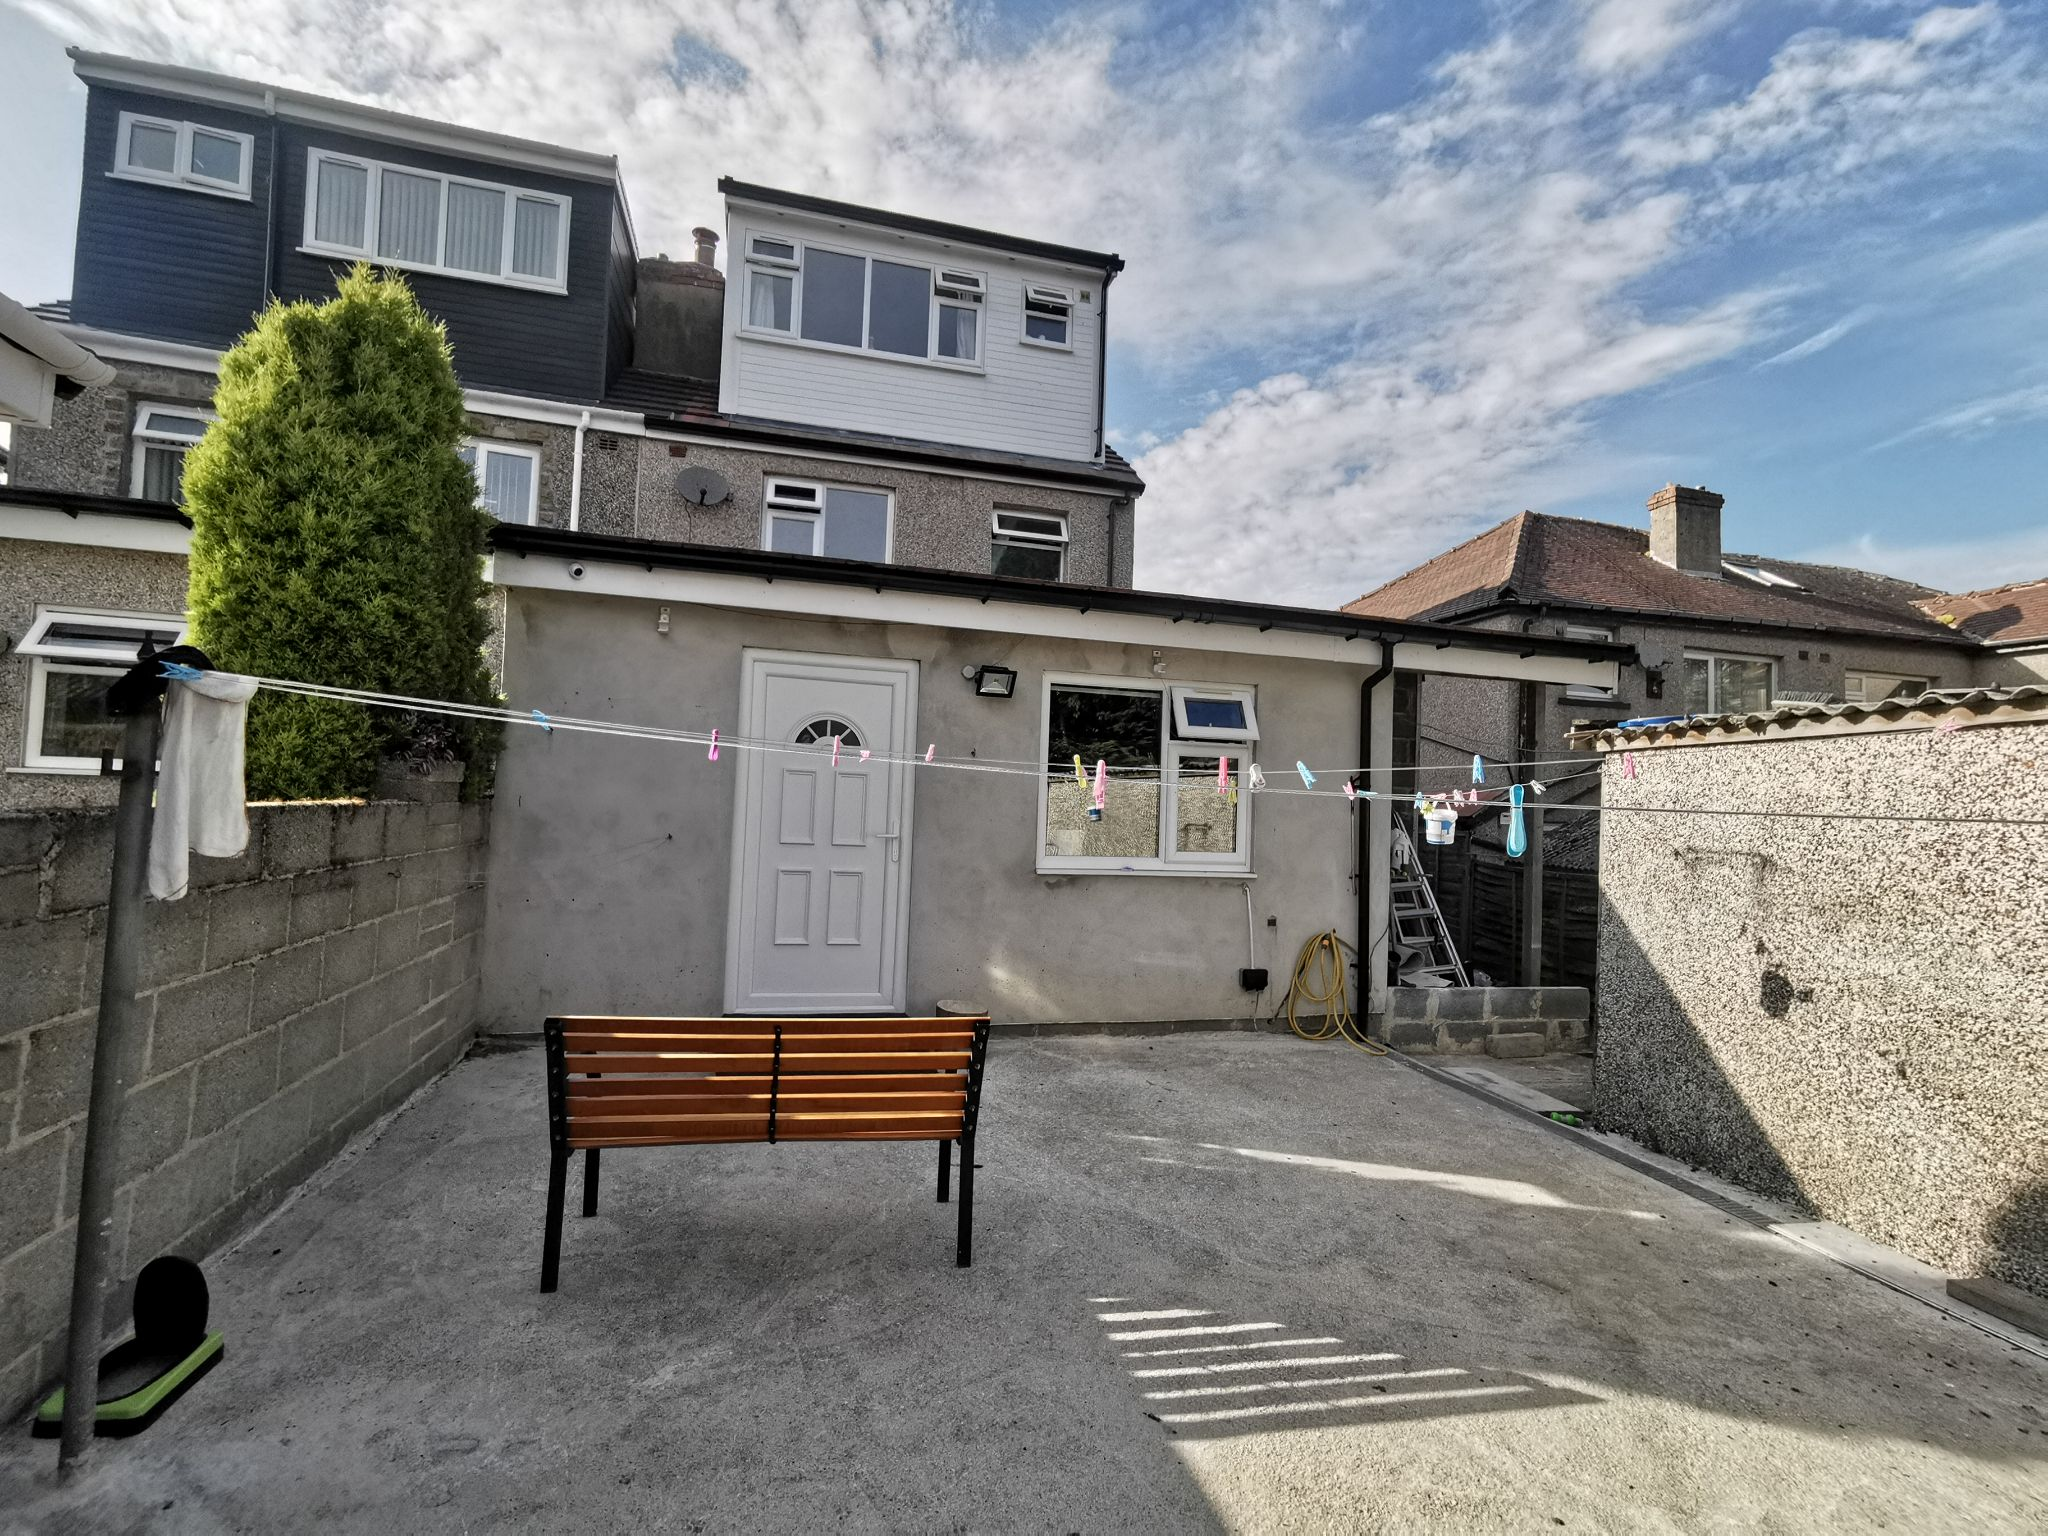 4 bedroom semi-detached house SSTC in Bradford - Photograph 20.